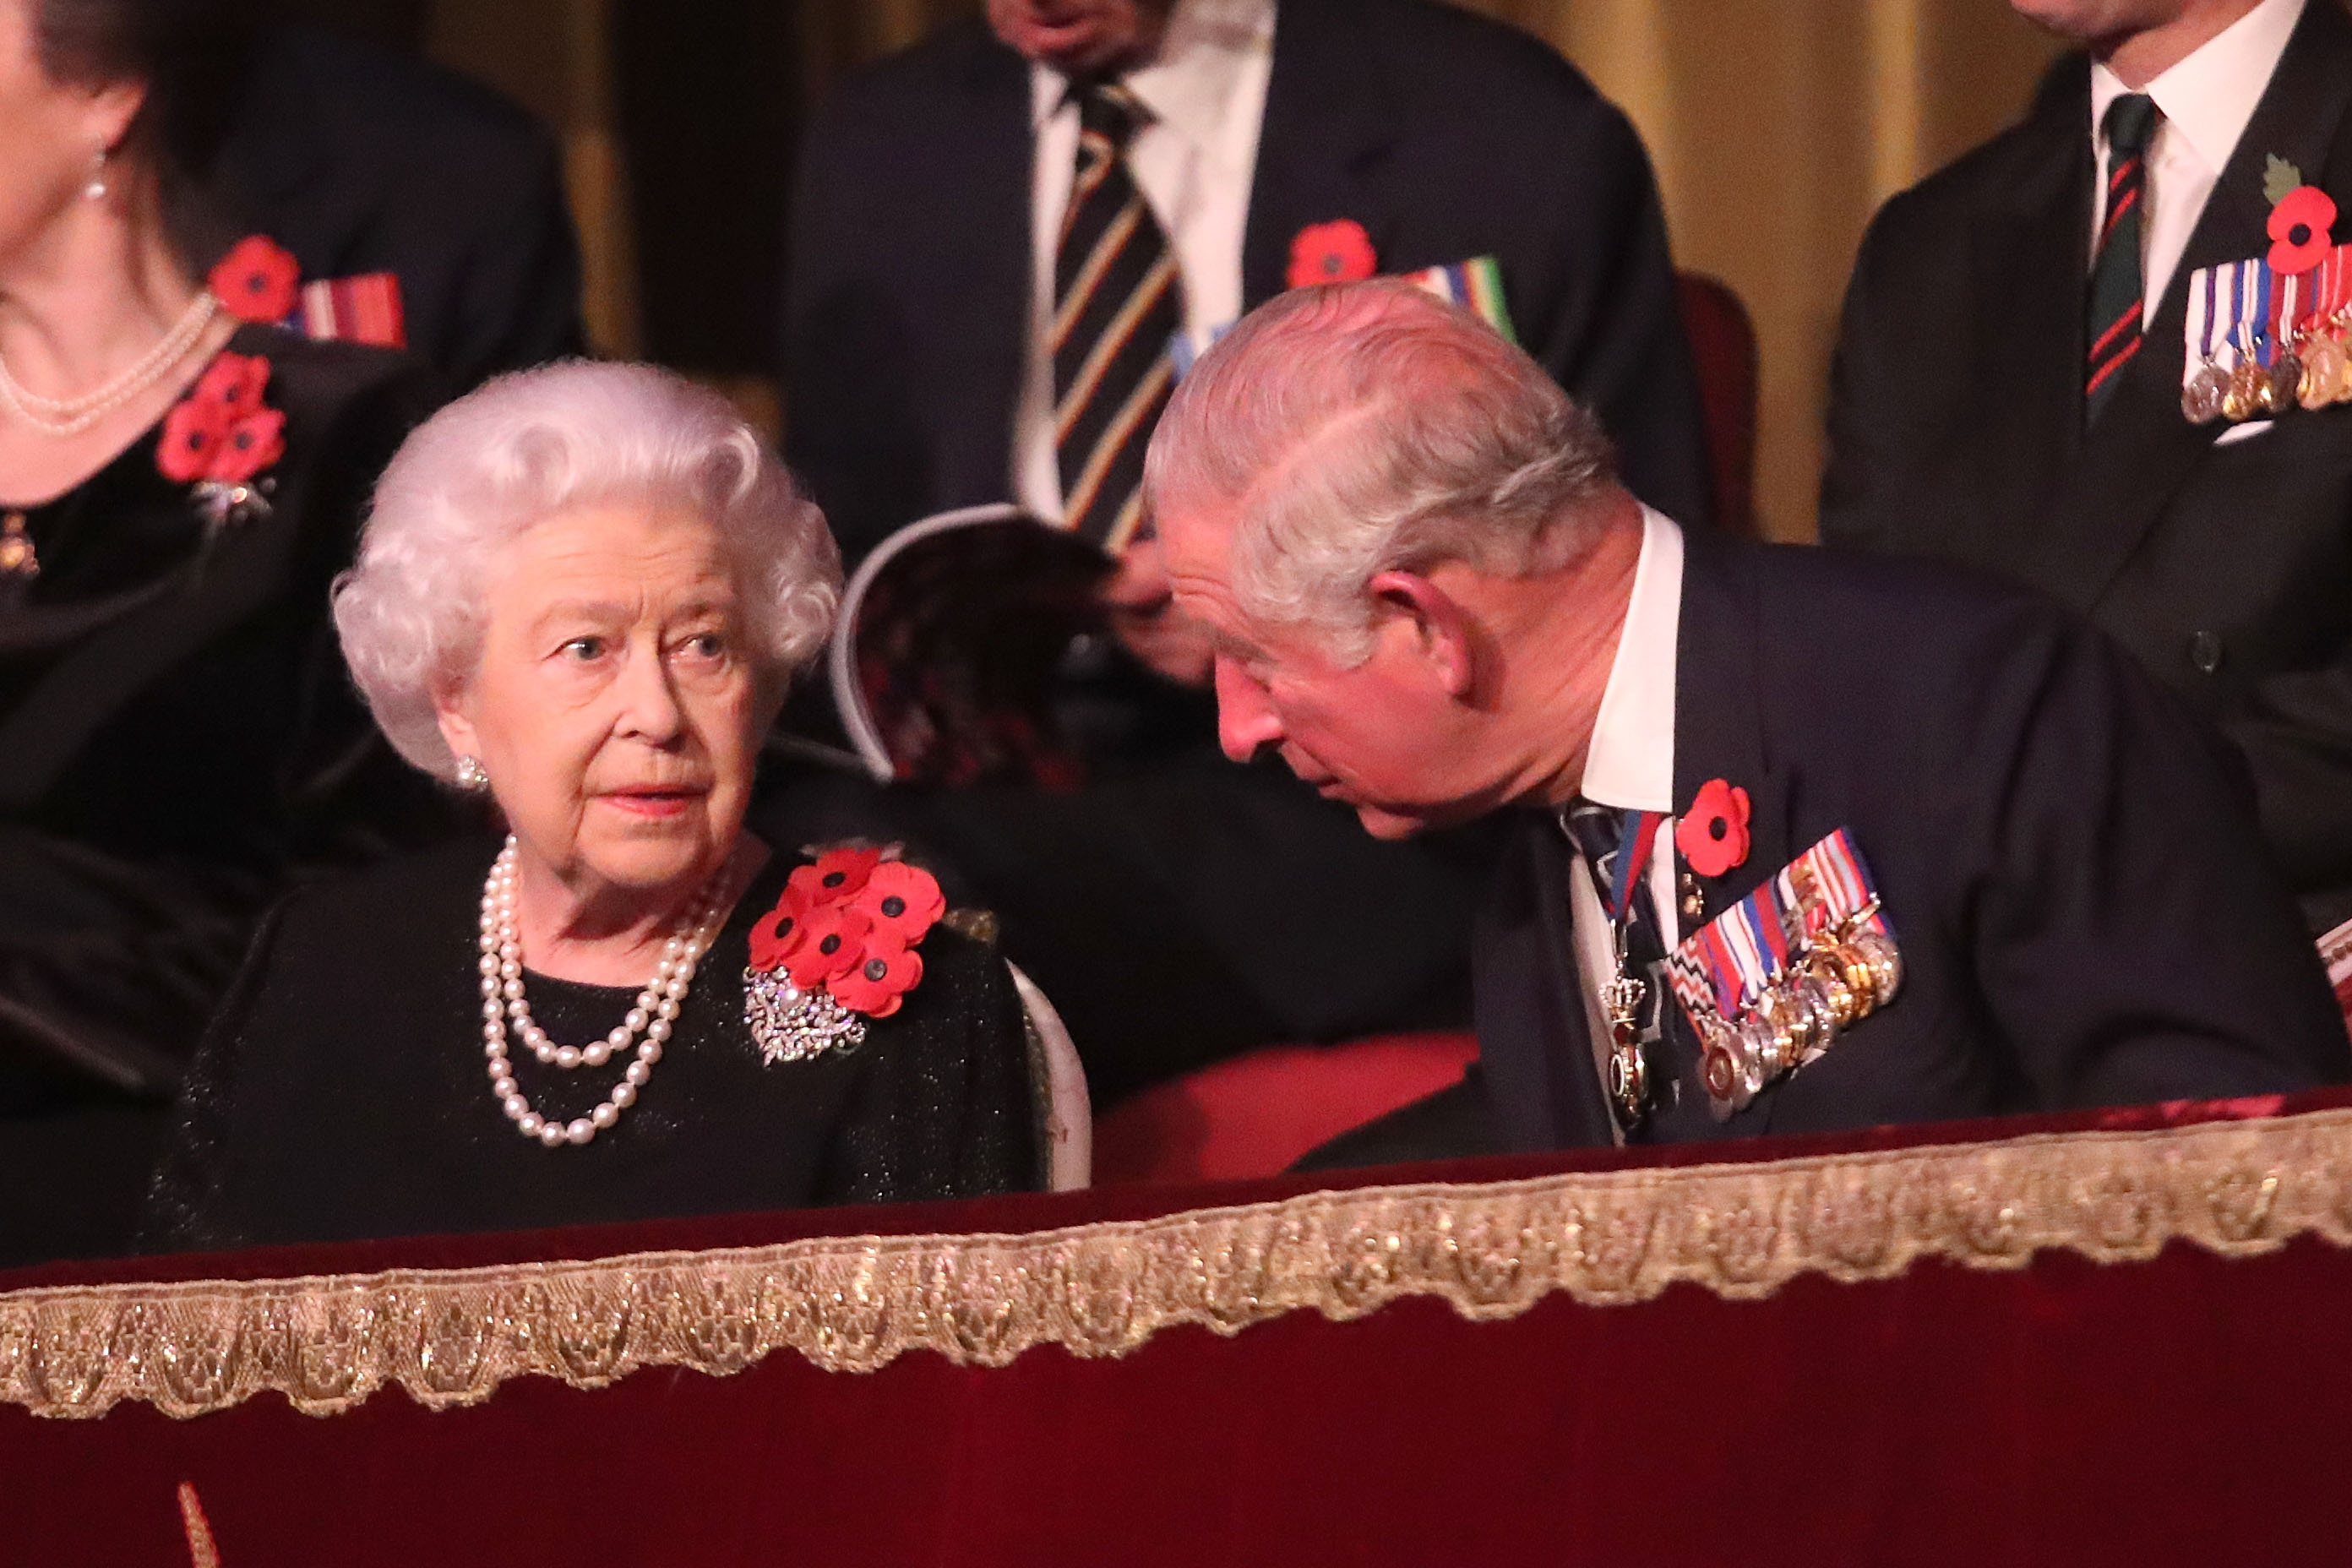 Royal Family commemorates First World War armistice anniversary